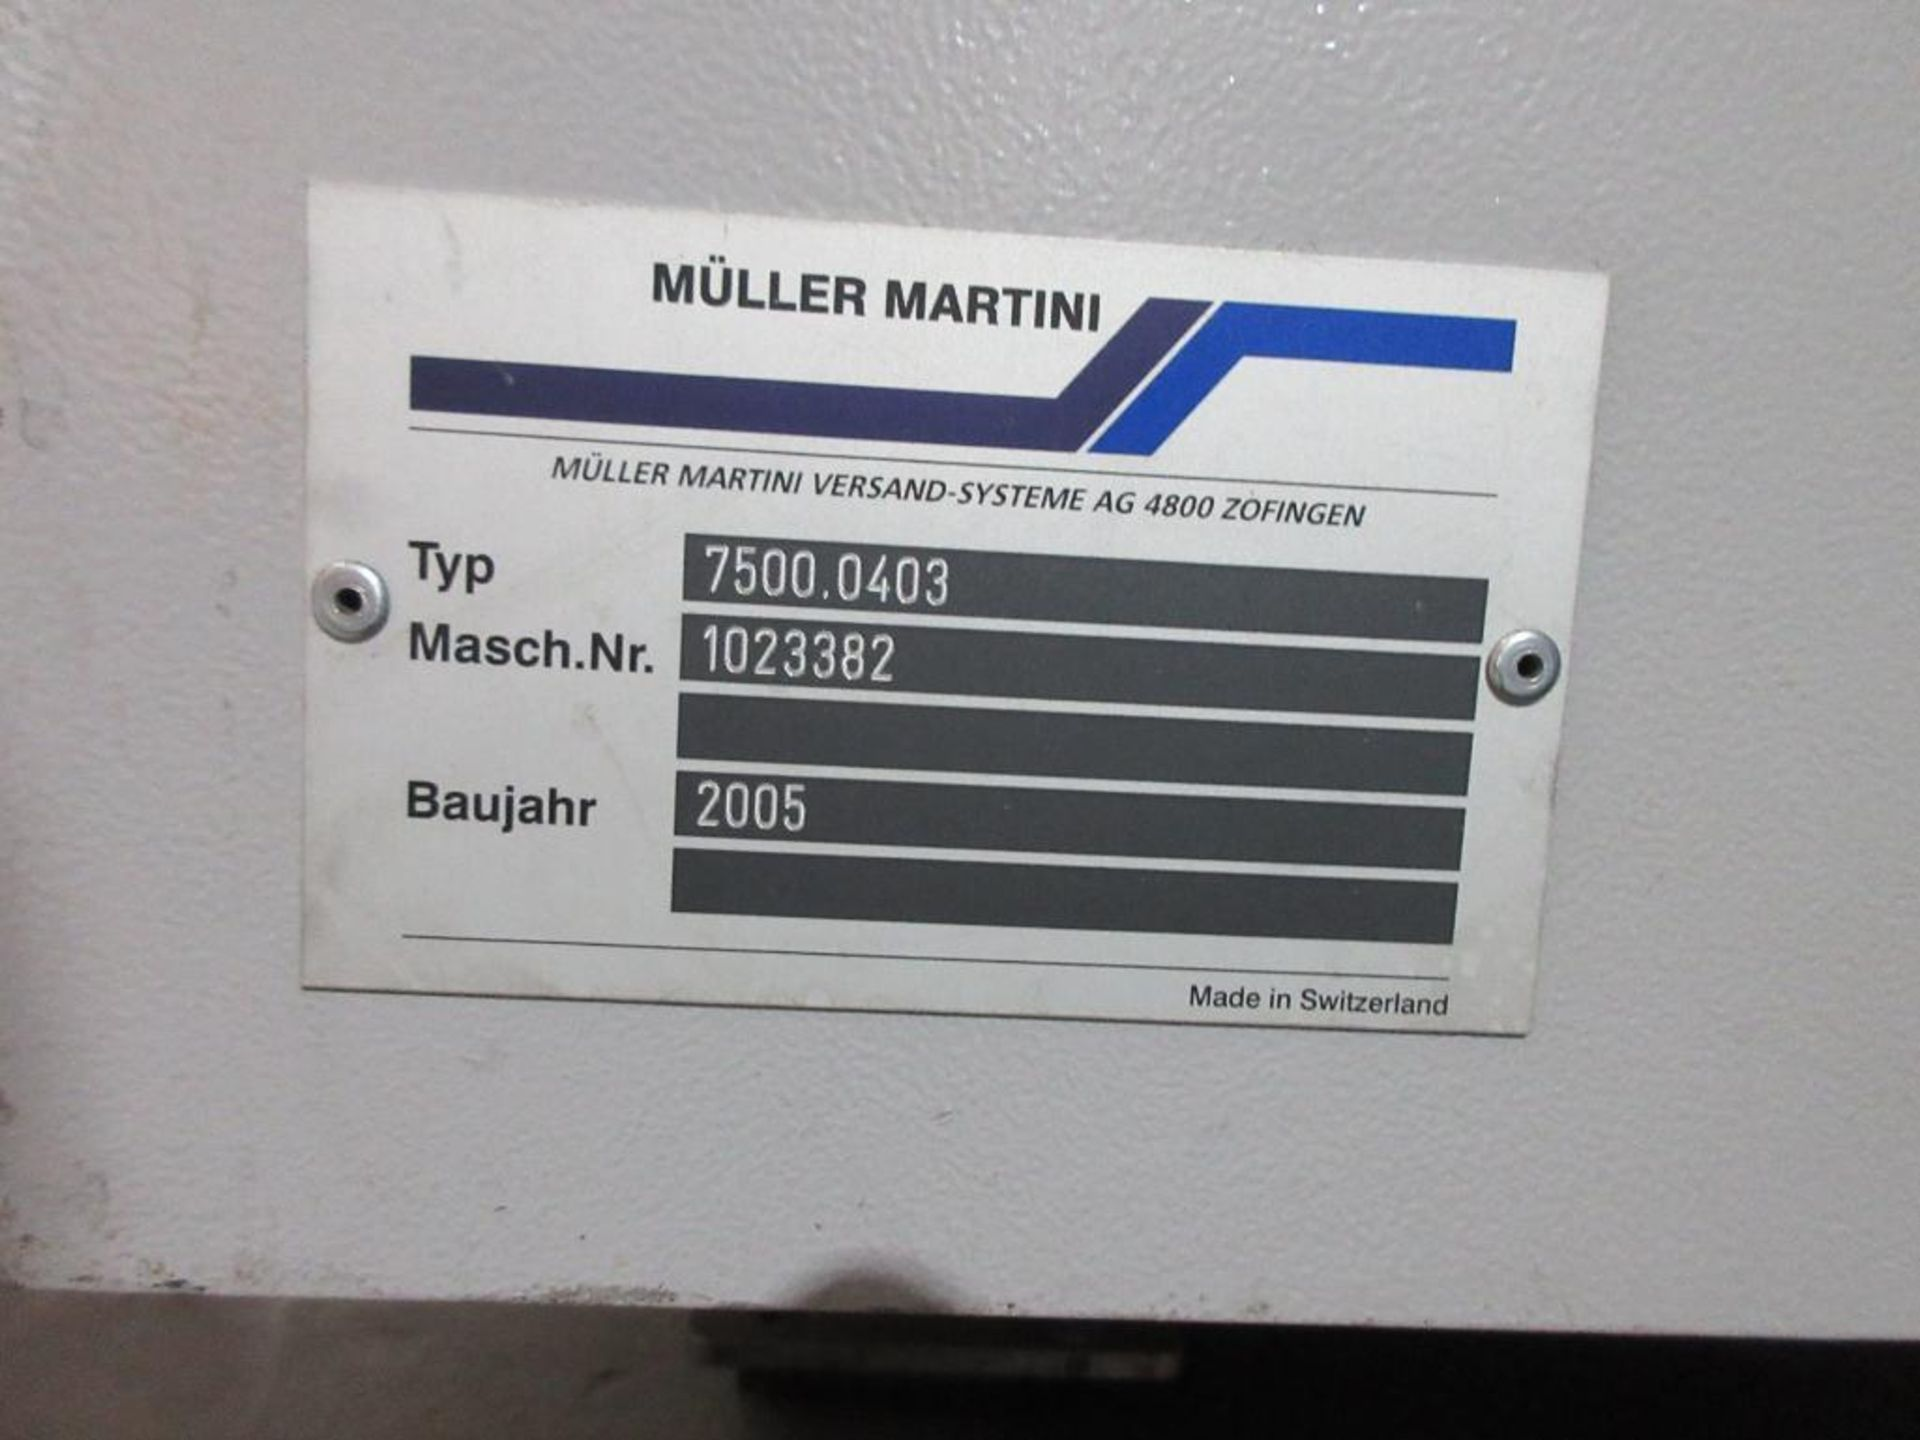 2005 Muller Martini Alphaliner inserter model 7500.0403, minimum pages 4 (tabloid, broadsheet, magaz - Image 8 of 15